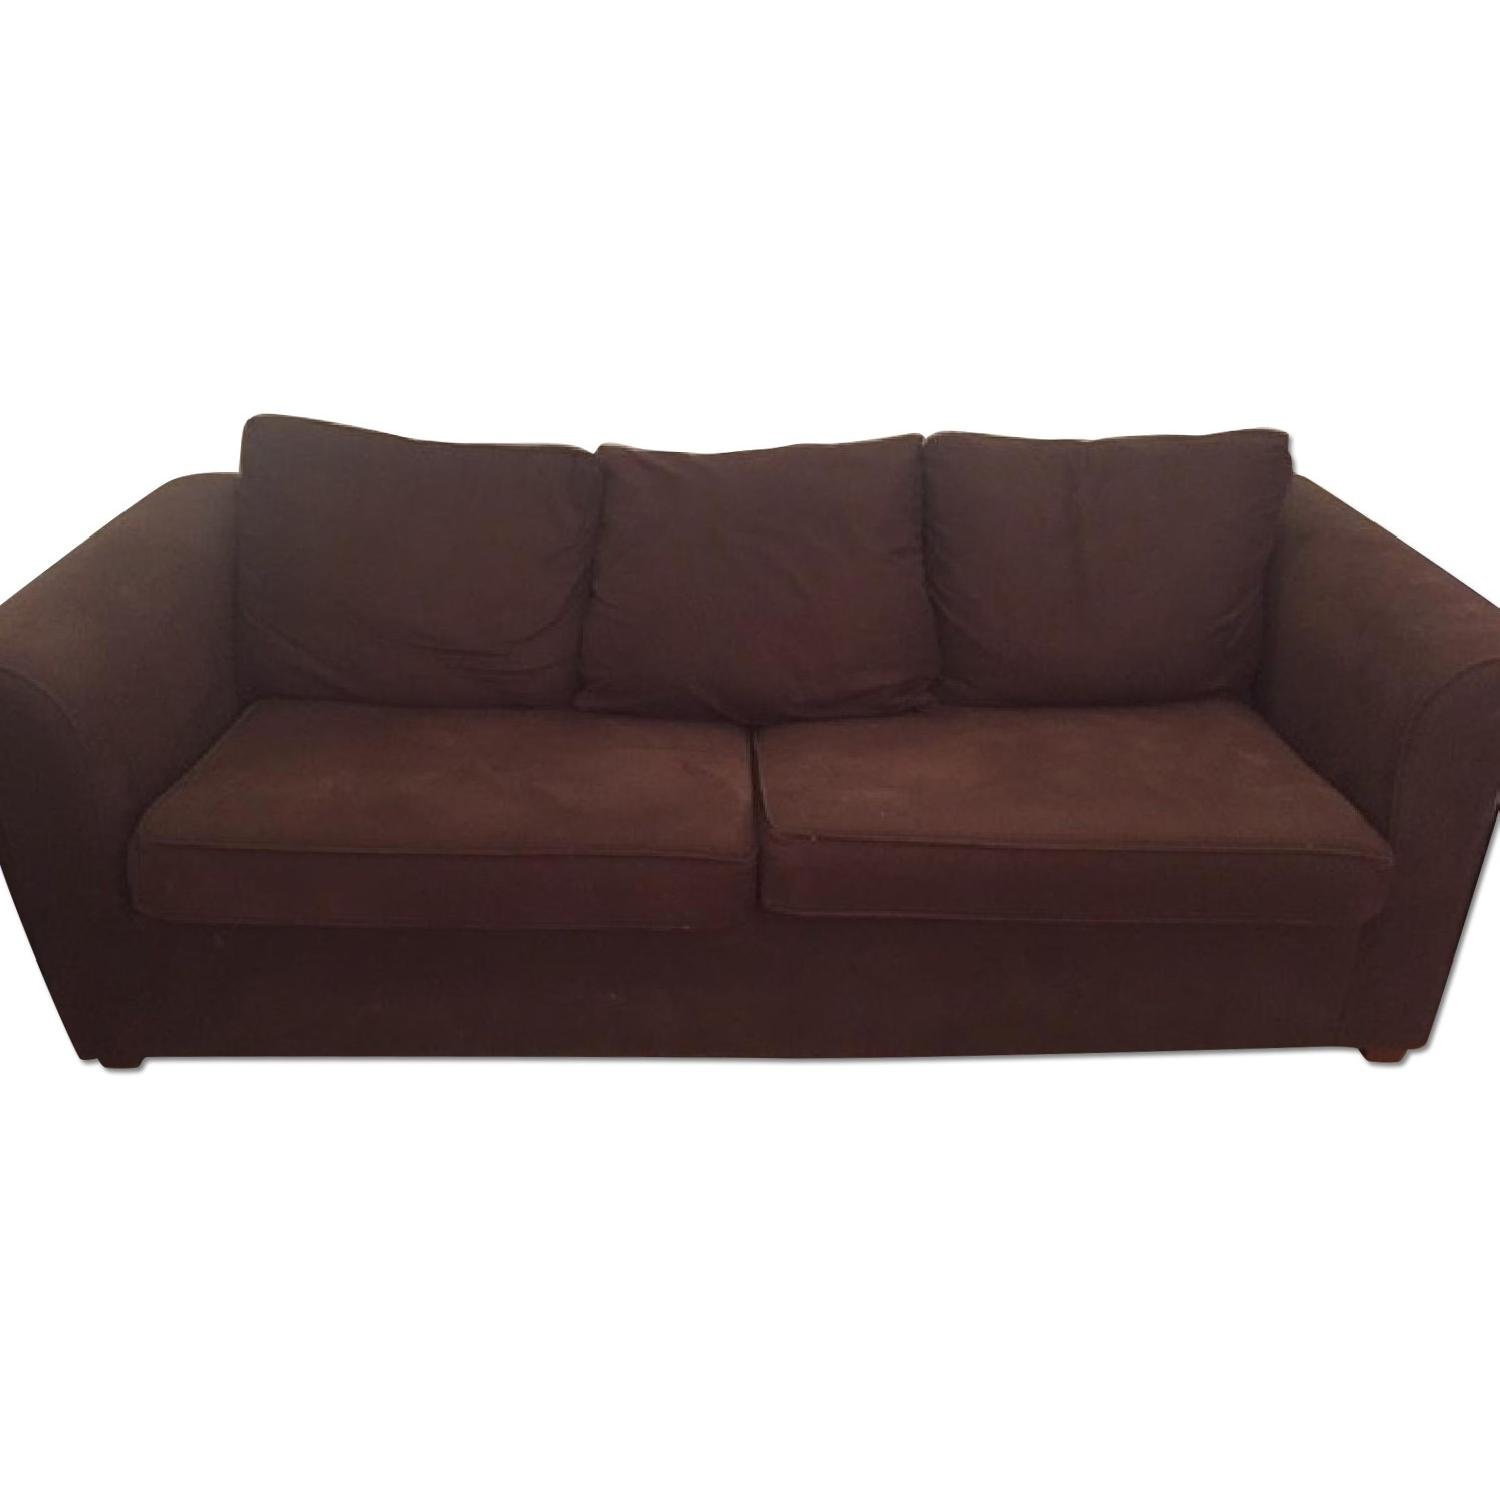 Ikea Couch - image-0